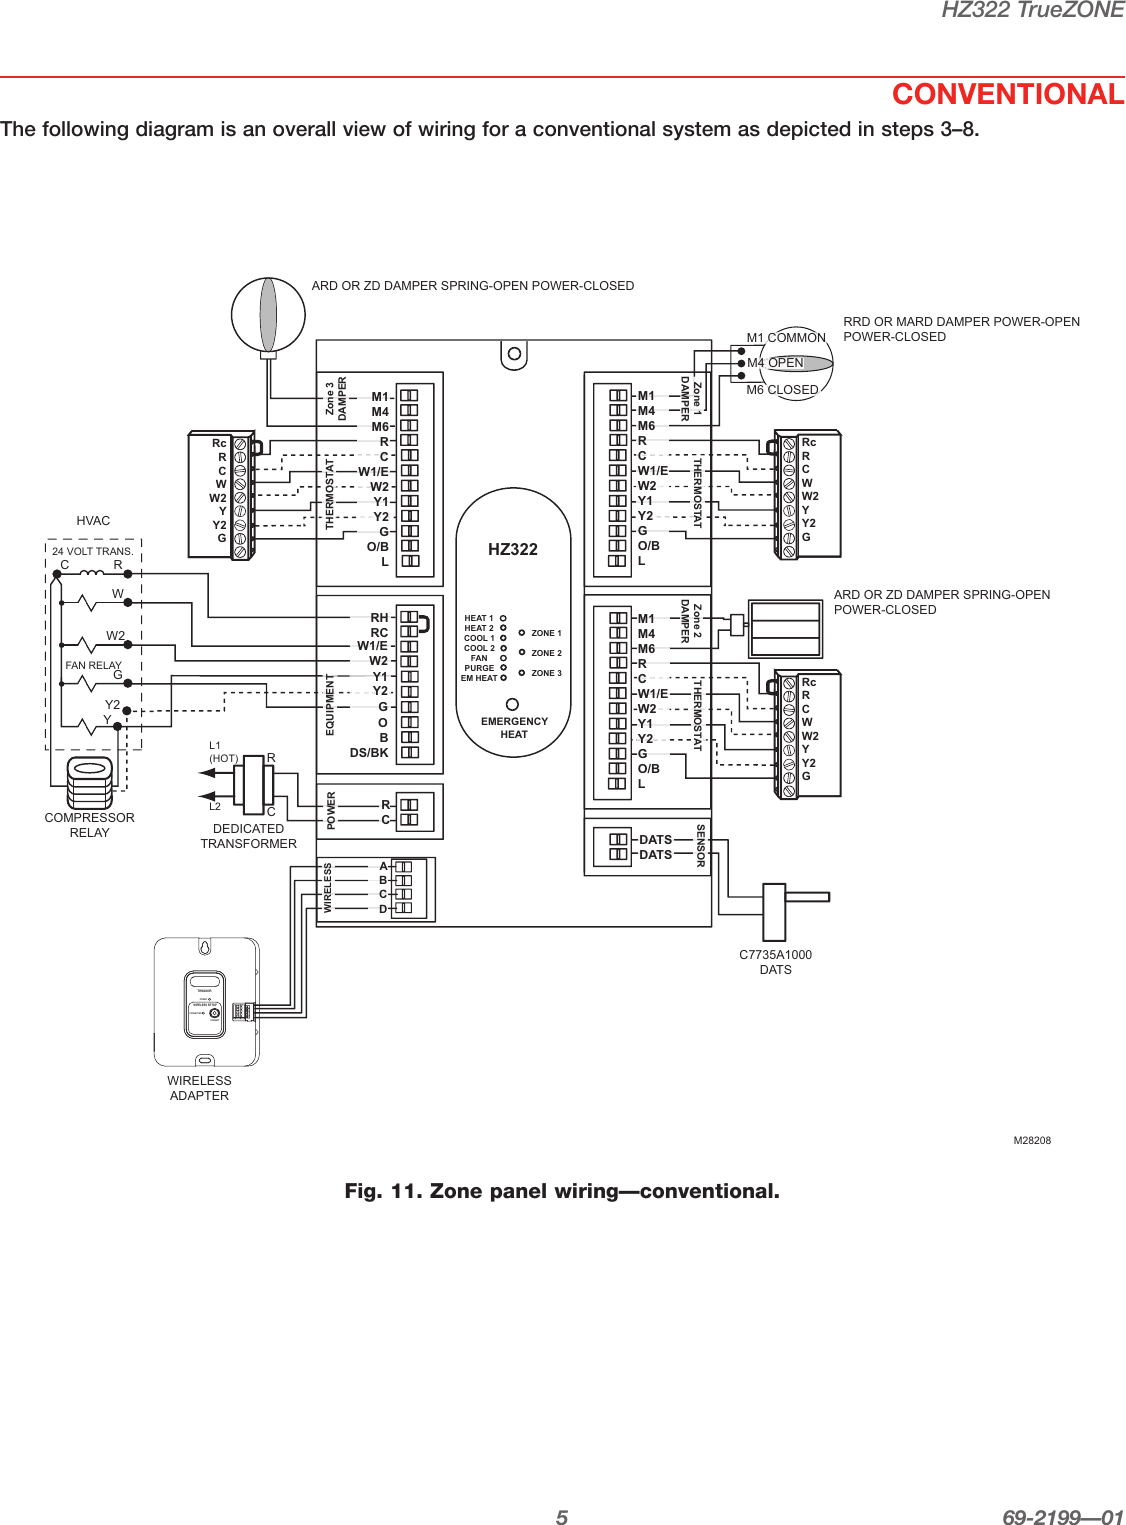 honeywell zoning wiring diagram 7 wire chronotherm iii